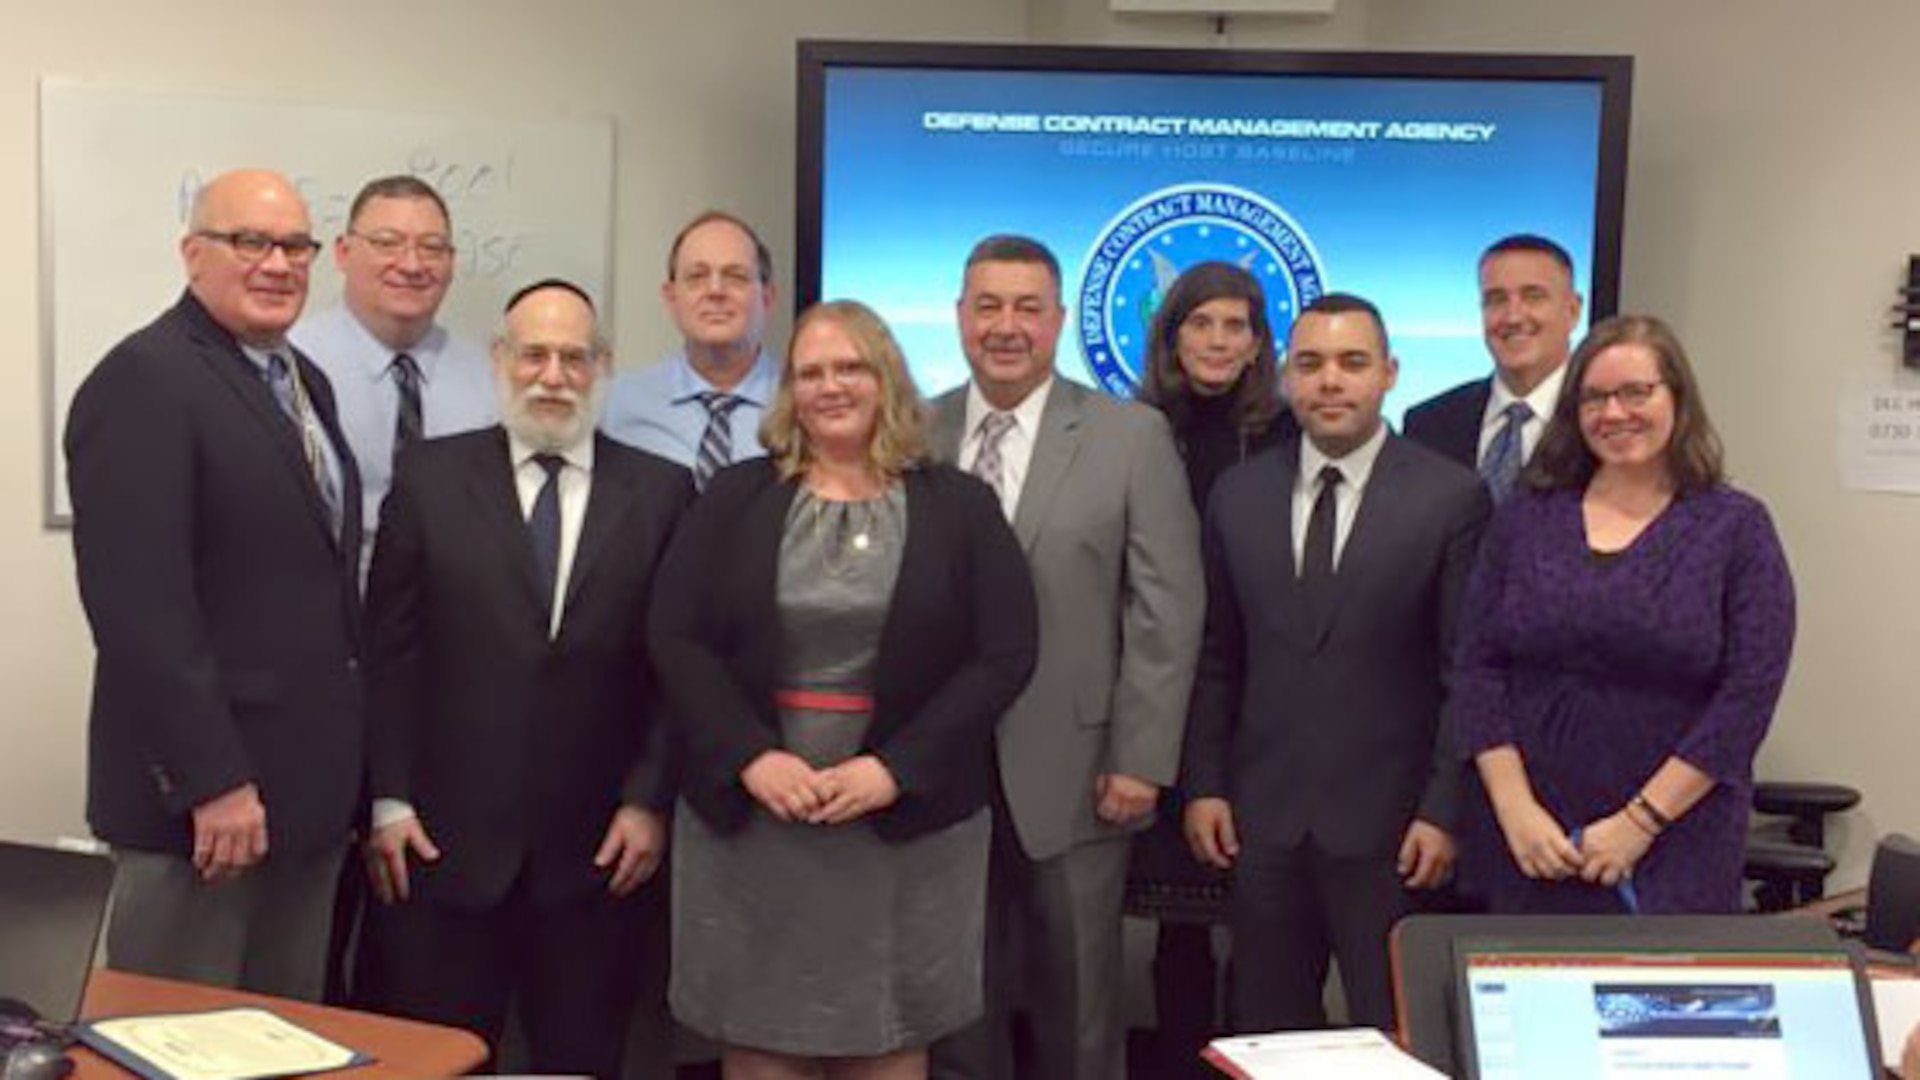 Michael Shields (center), executive director of Quality Assurance at the Defense Contract Management Agency, recently thanked the employees involved with the development of a new class, ENGR233, Technical Support to Indirect Costs. Employees (left to right): Christopher Brust; Anthony Labath; Stuart Harrow; Ken Pedeleose; Angelica Rogers; Shields; Julie Nesbit; José Ortiz; Kip Shepard; and Christina Payette. (DCMA photo by Harry Diaz Agosto)